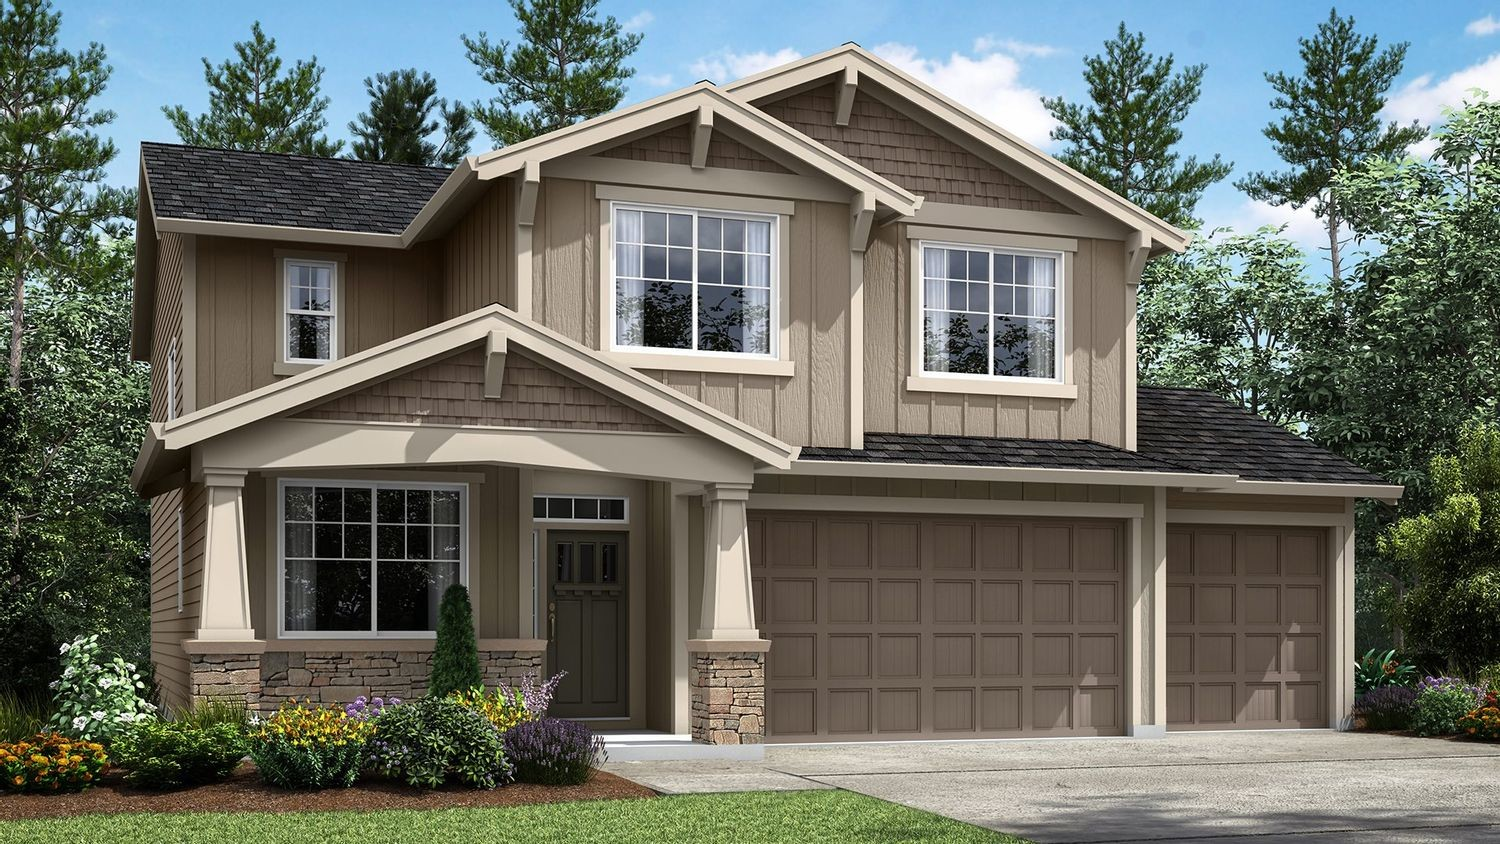 Move In Ready New Home In Brookside North Community